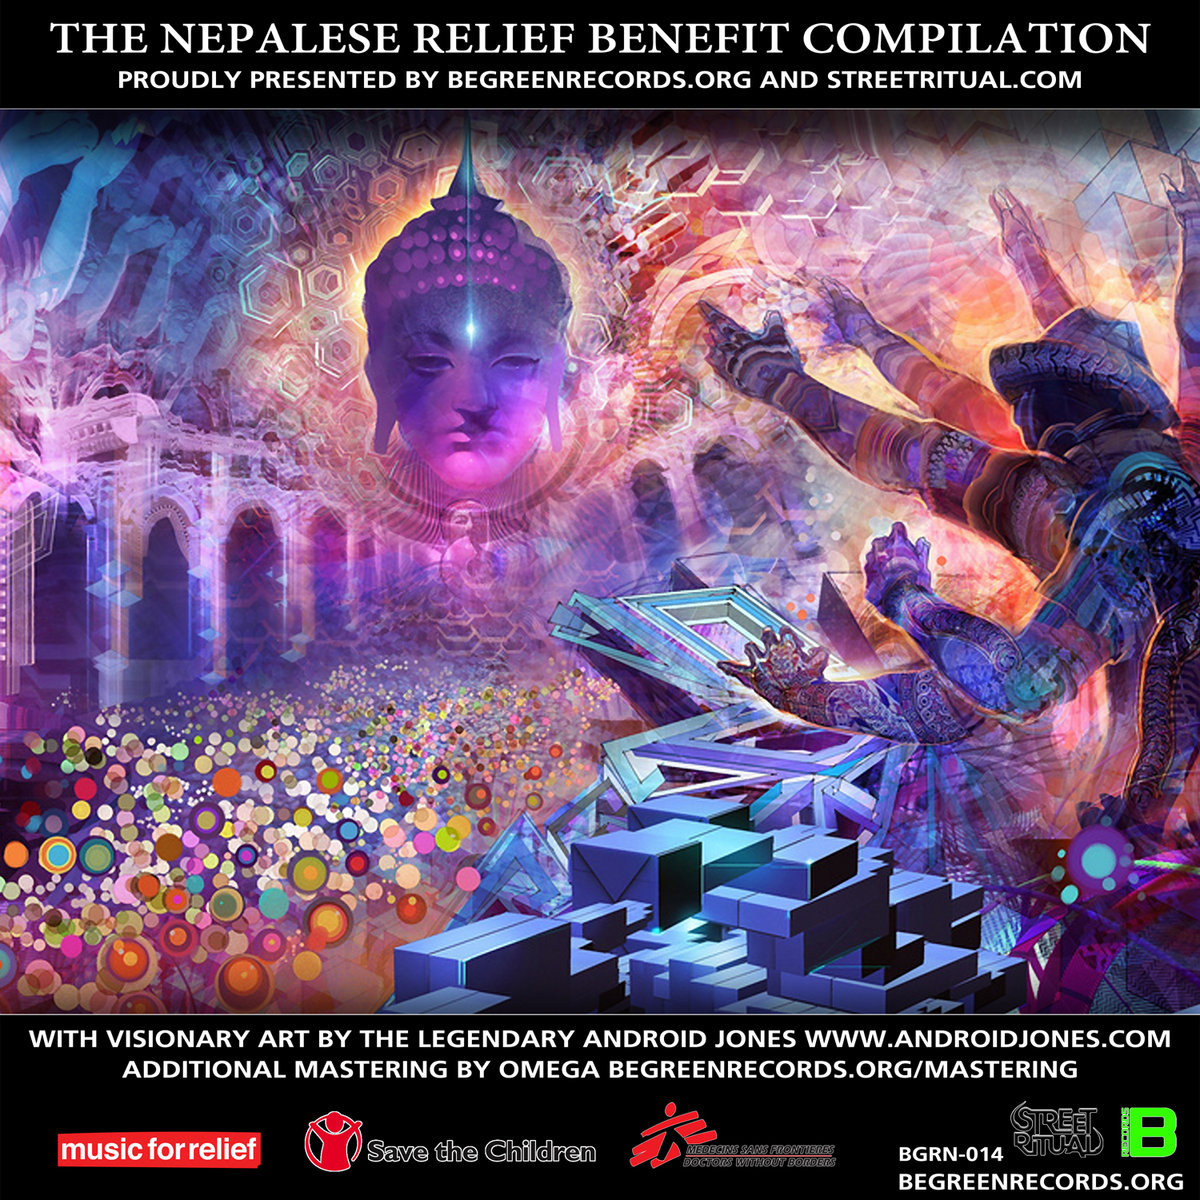 The Avatara VII23 - Akasha (Kephras Hovering Atmosfearic Chillout Mix) @ 'Various Artists - The Nepalese Relief Benefit Compilation' album (bass, electronic)